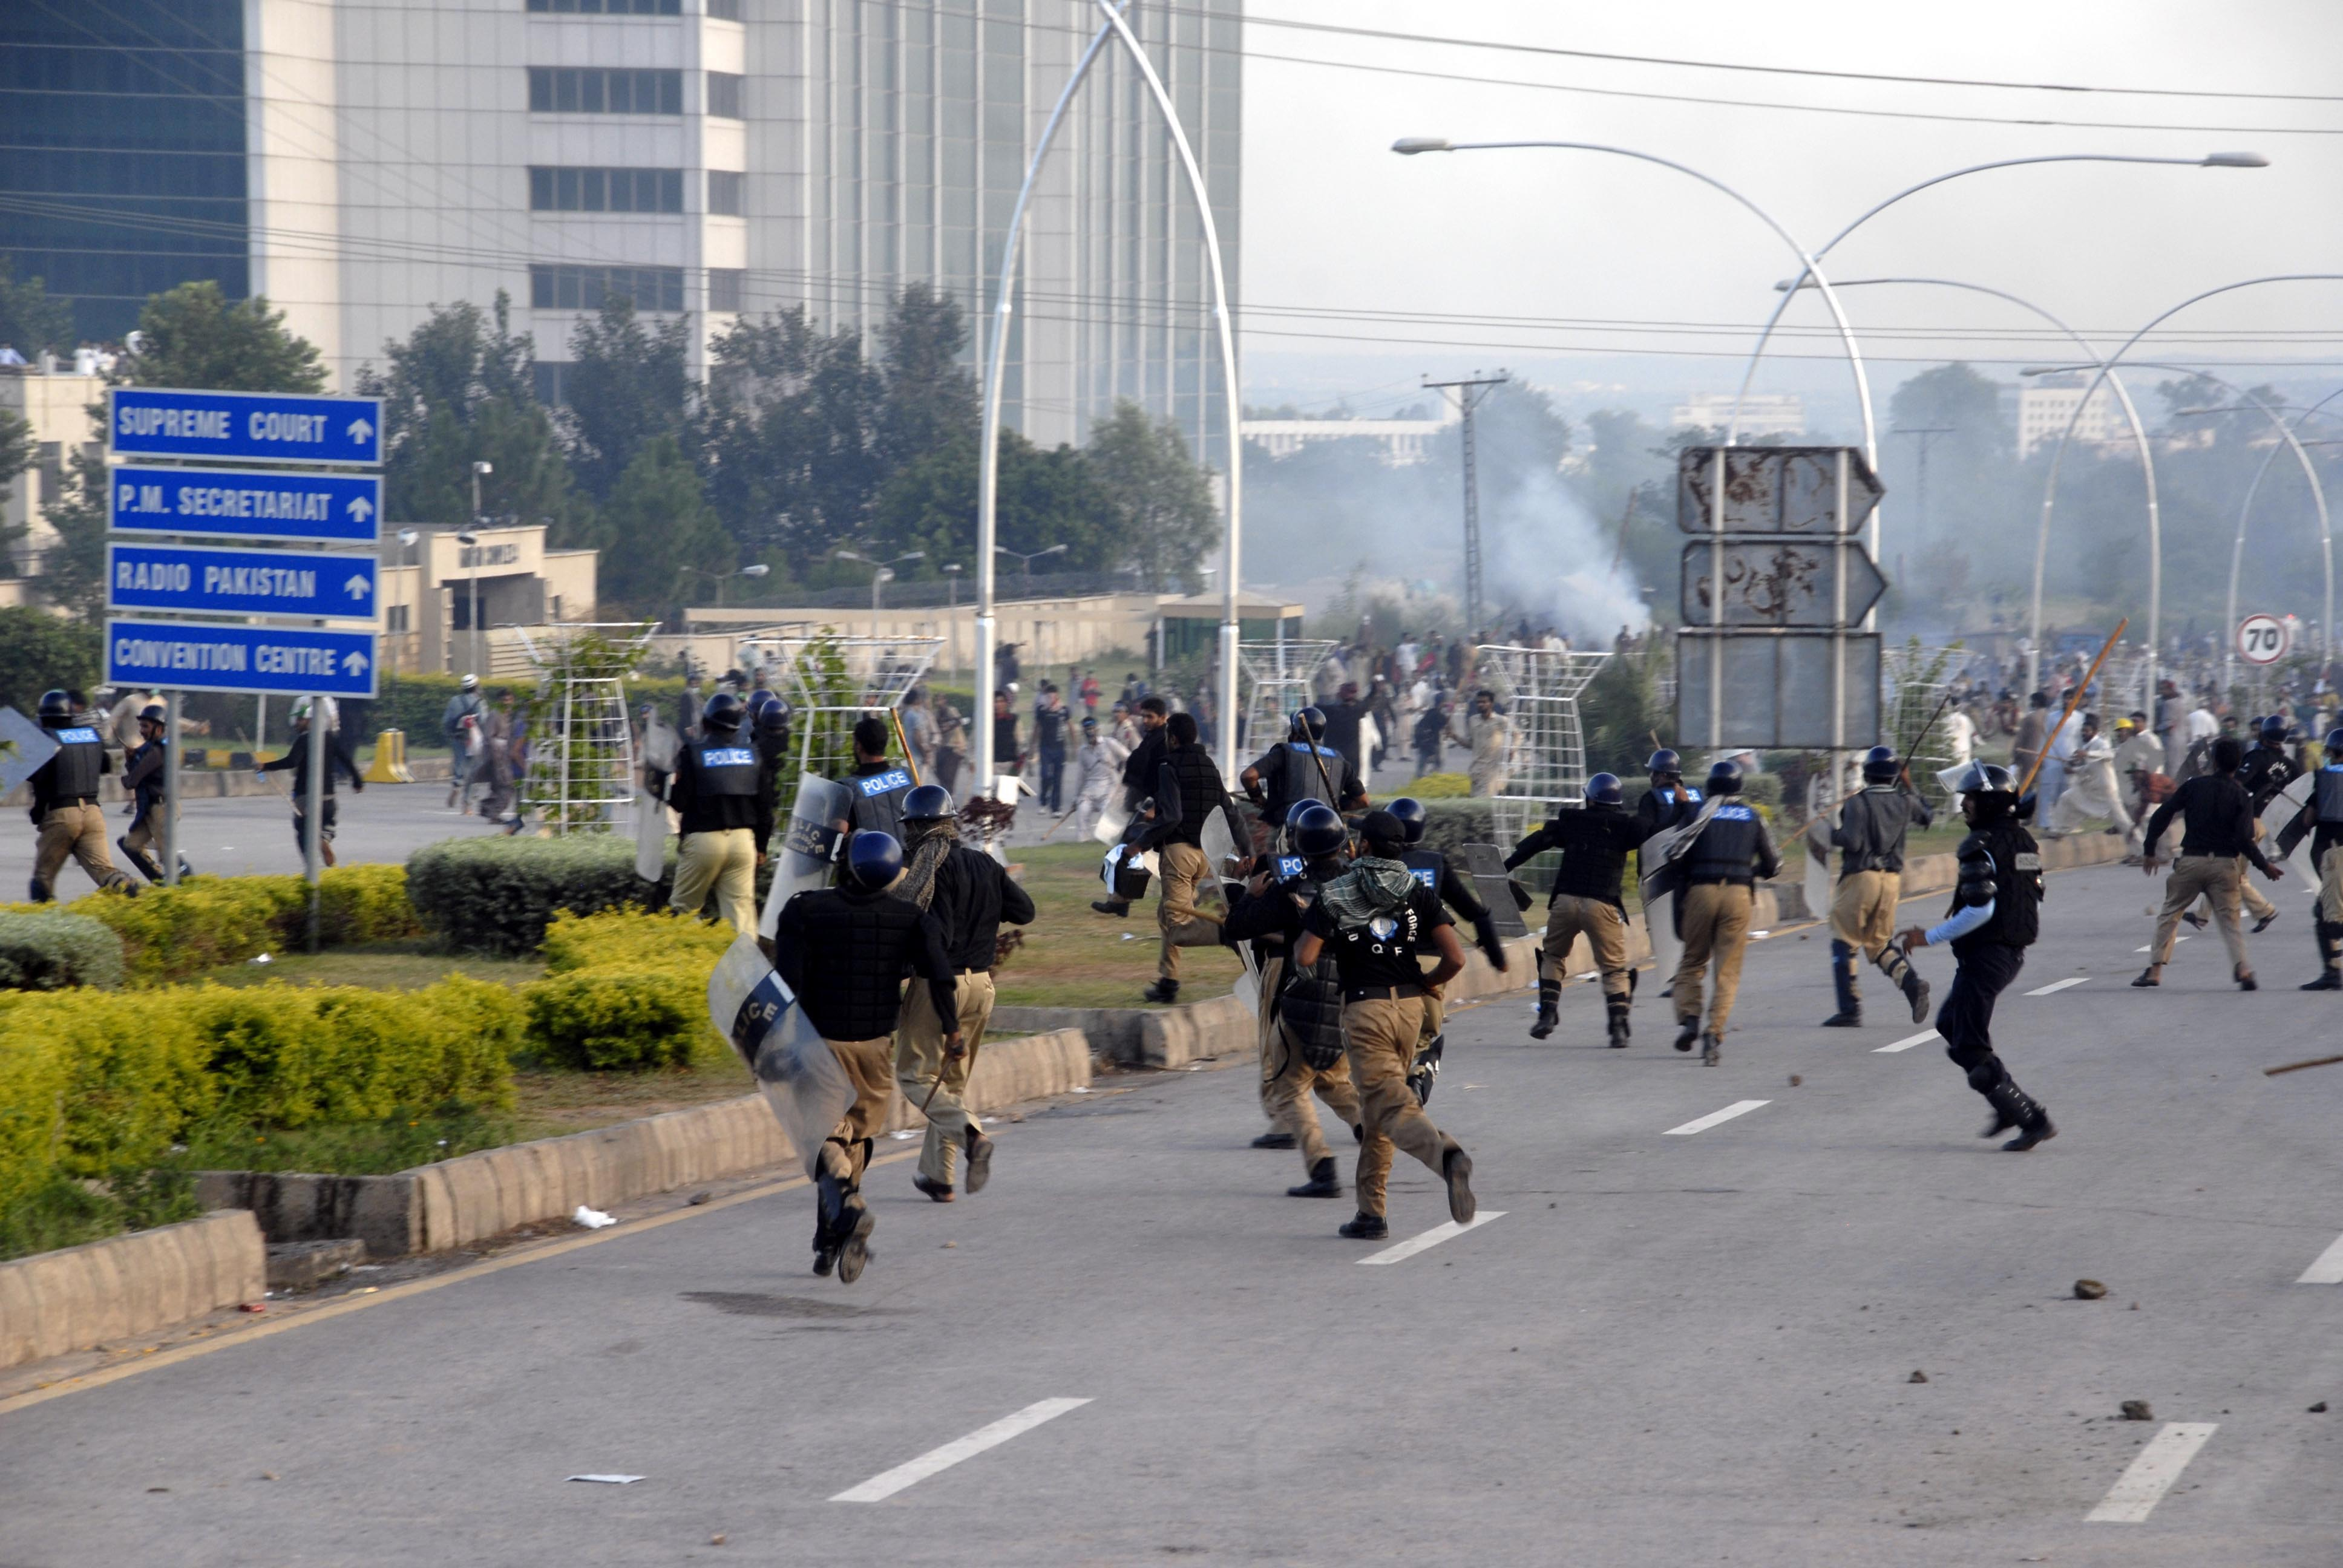 Supporters of Imran Khan and Tahir-ul-Qadri, attack Pakistani security forces during the ongoing anti-government protests in Islamabad. Clashes between the riot police and thousands of anti-government protester continued  which left three people dead and more than 400 wounded.